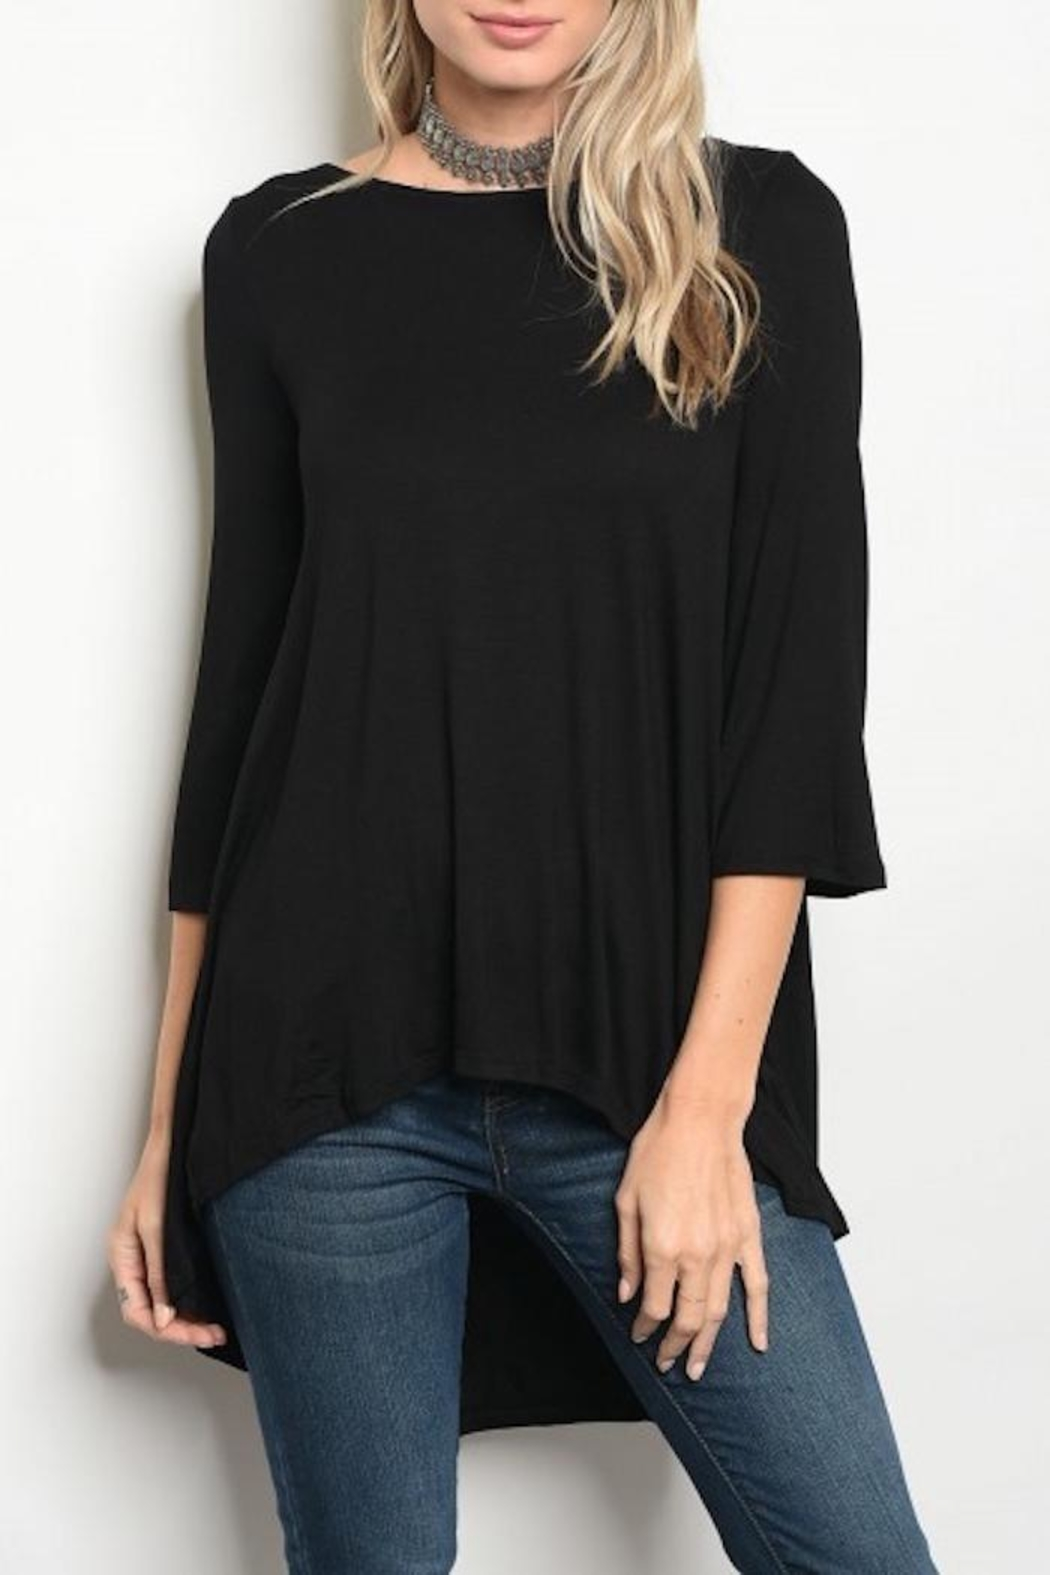 annabelle Keyhole Flowy Top - Main Image